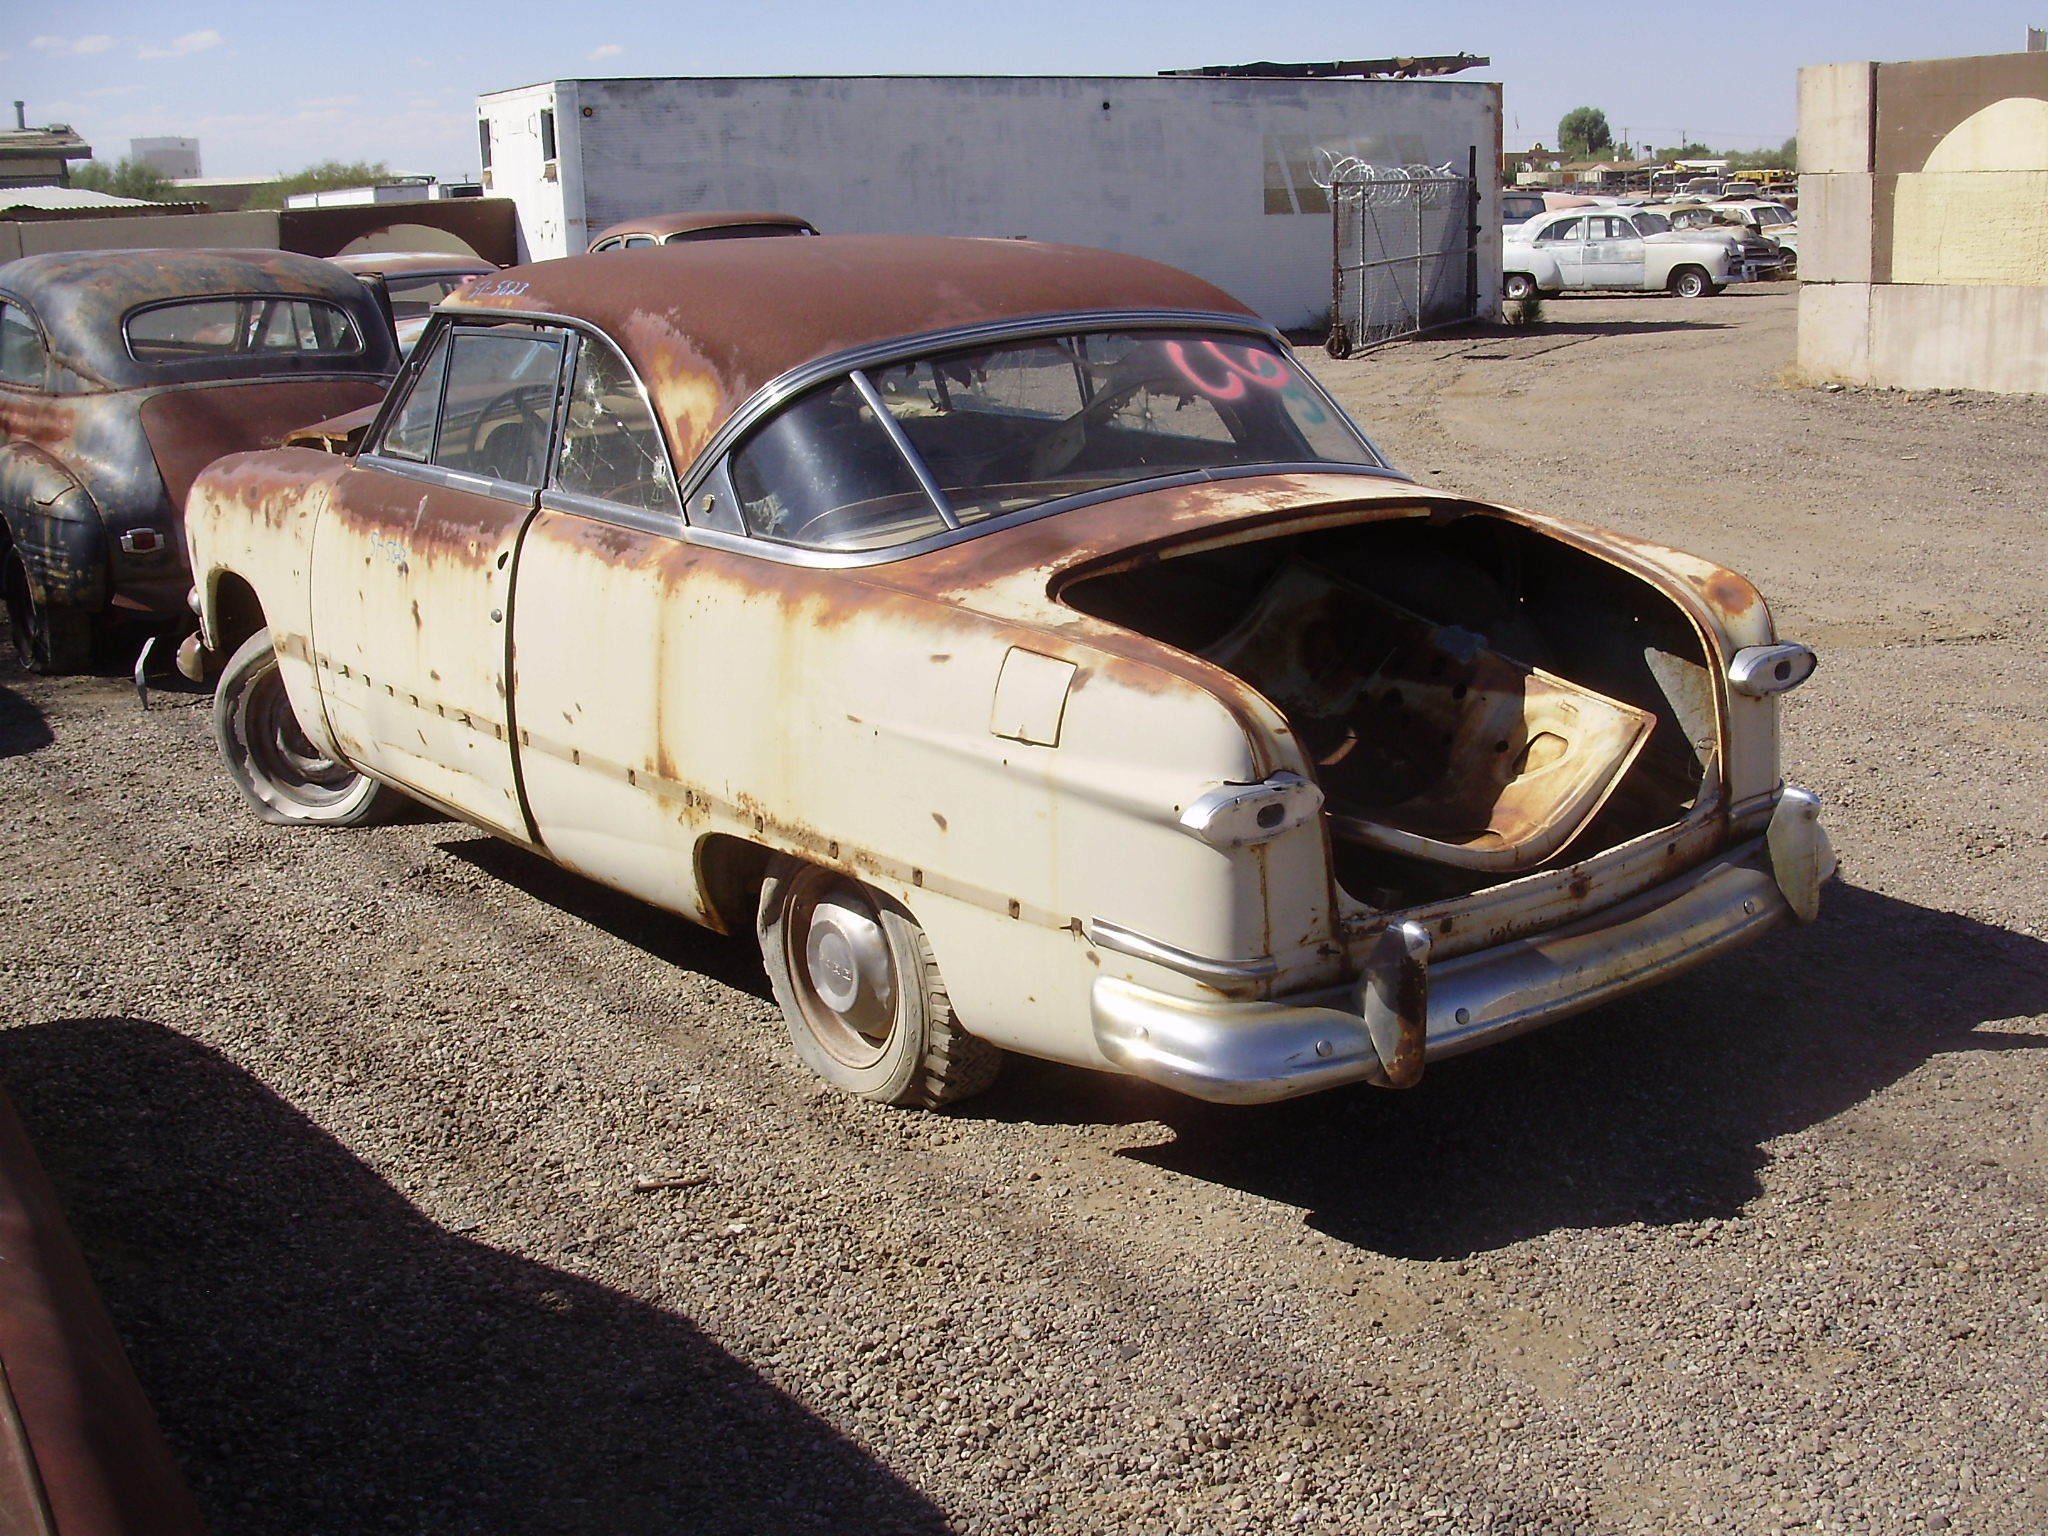 1951 Ford Ford Car (#51FO5823C) | Desert Valley Auto Parts - photo#8